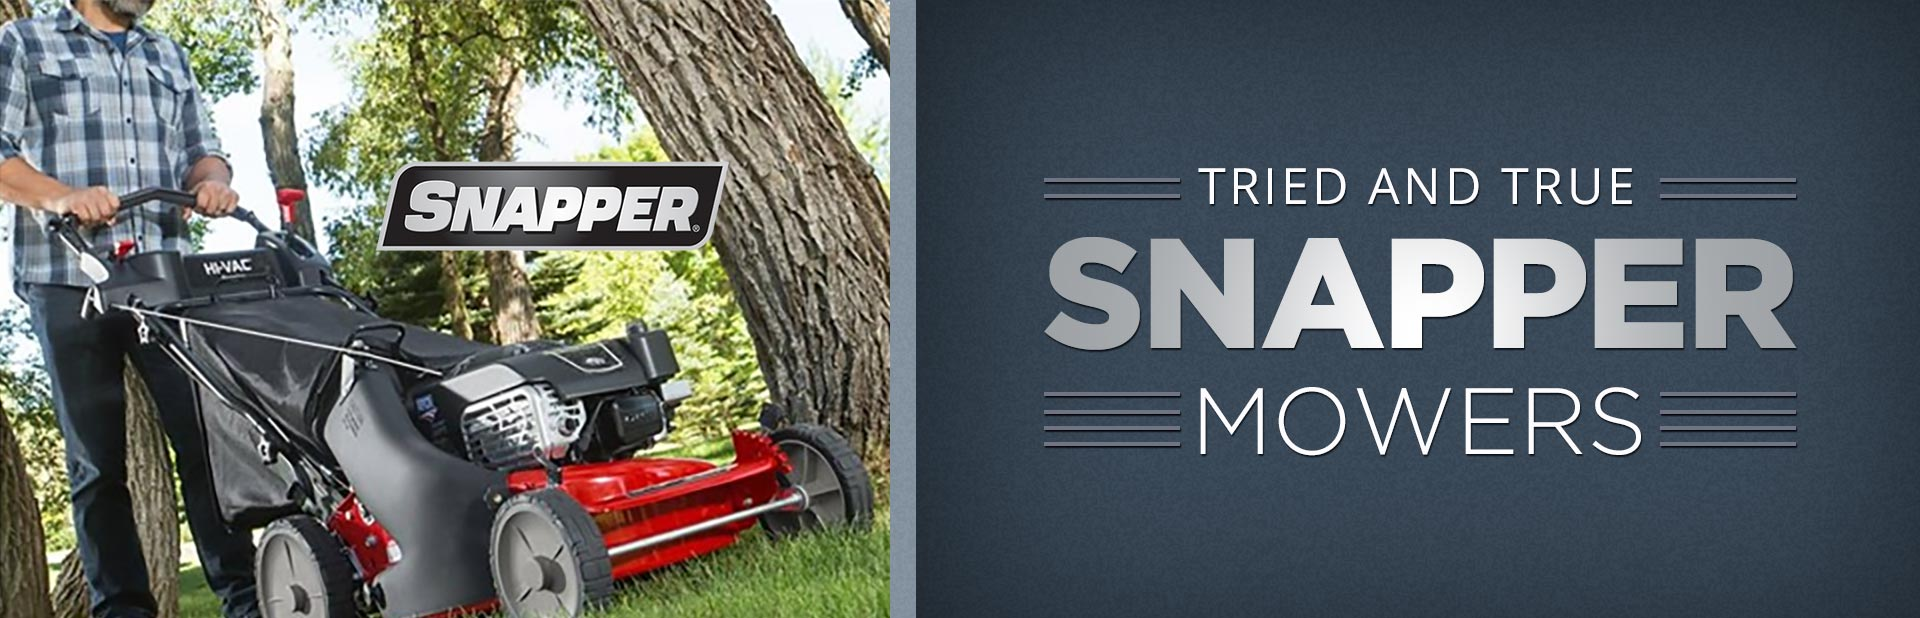 Snapper Mowers: Click here to view the models.